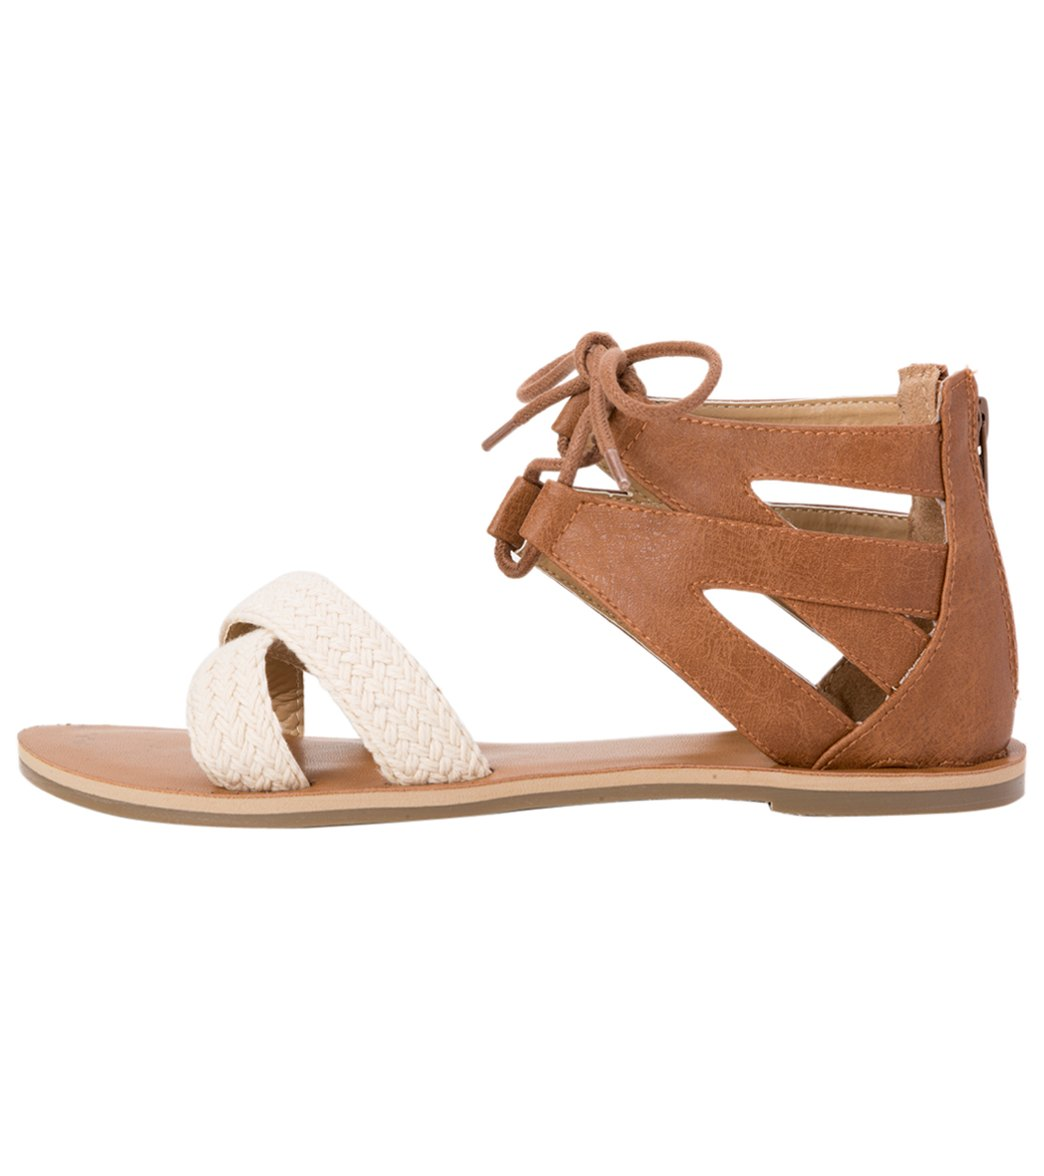 c42da6d6825 Billabong Women s Wild Waves Sandal at SwimOutlet.com - Free Shipping